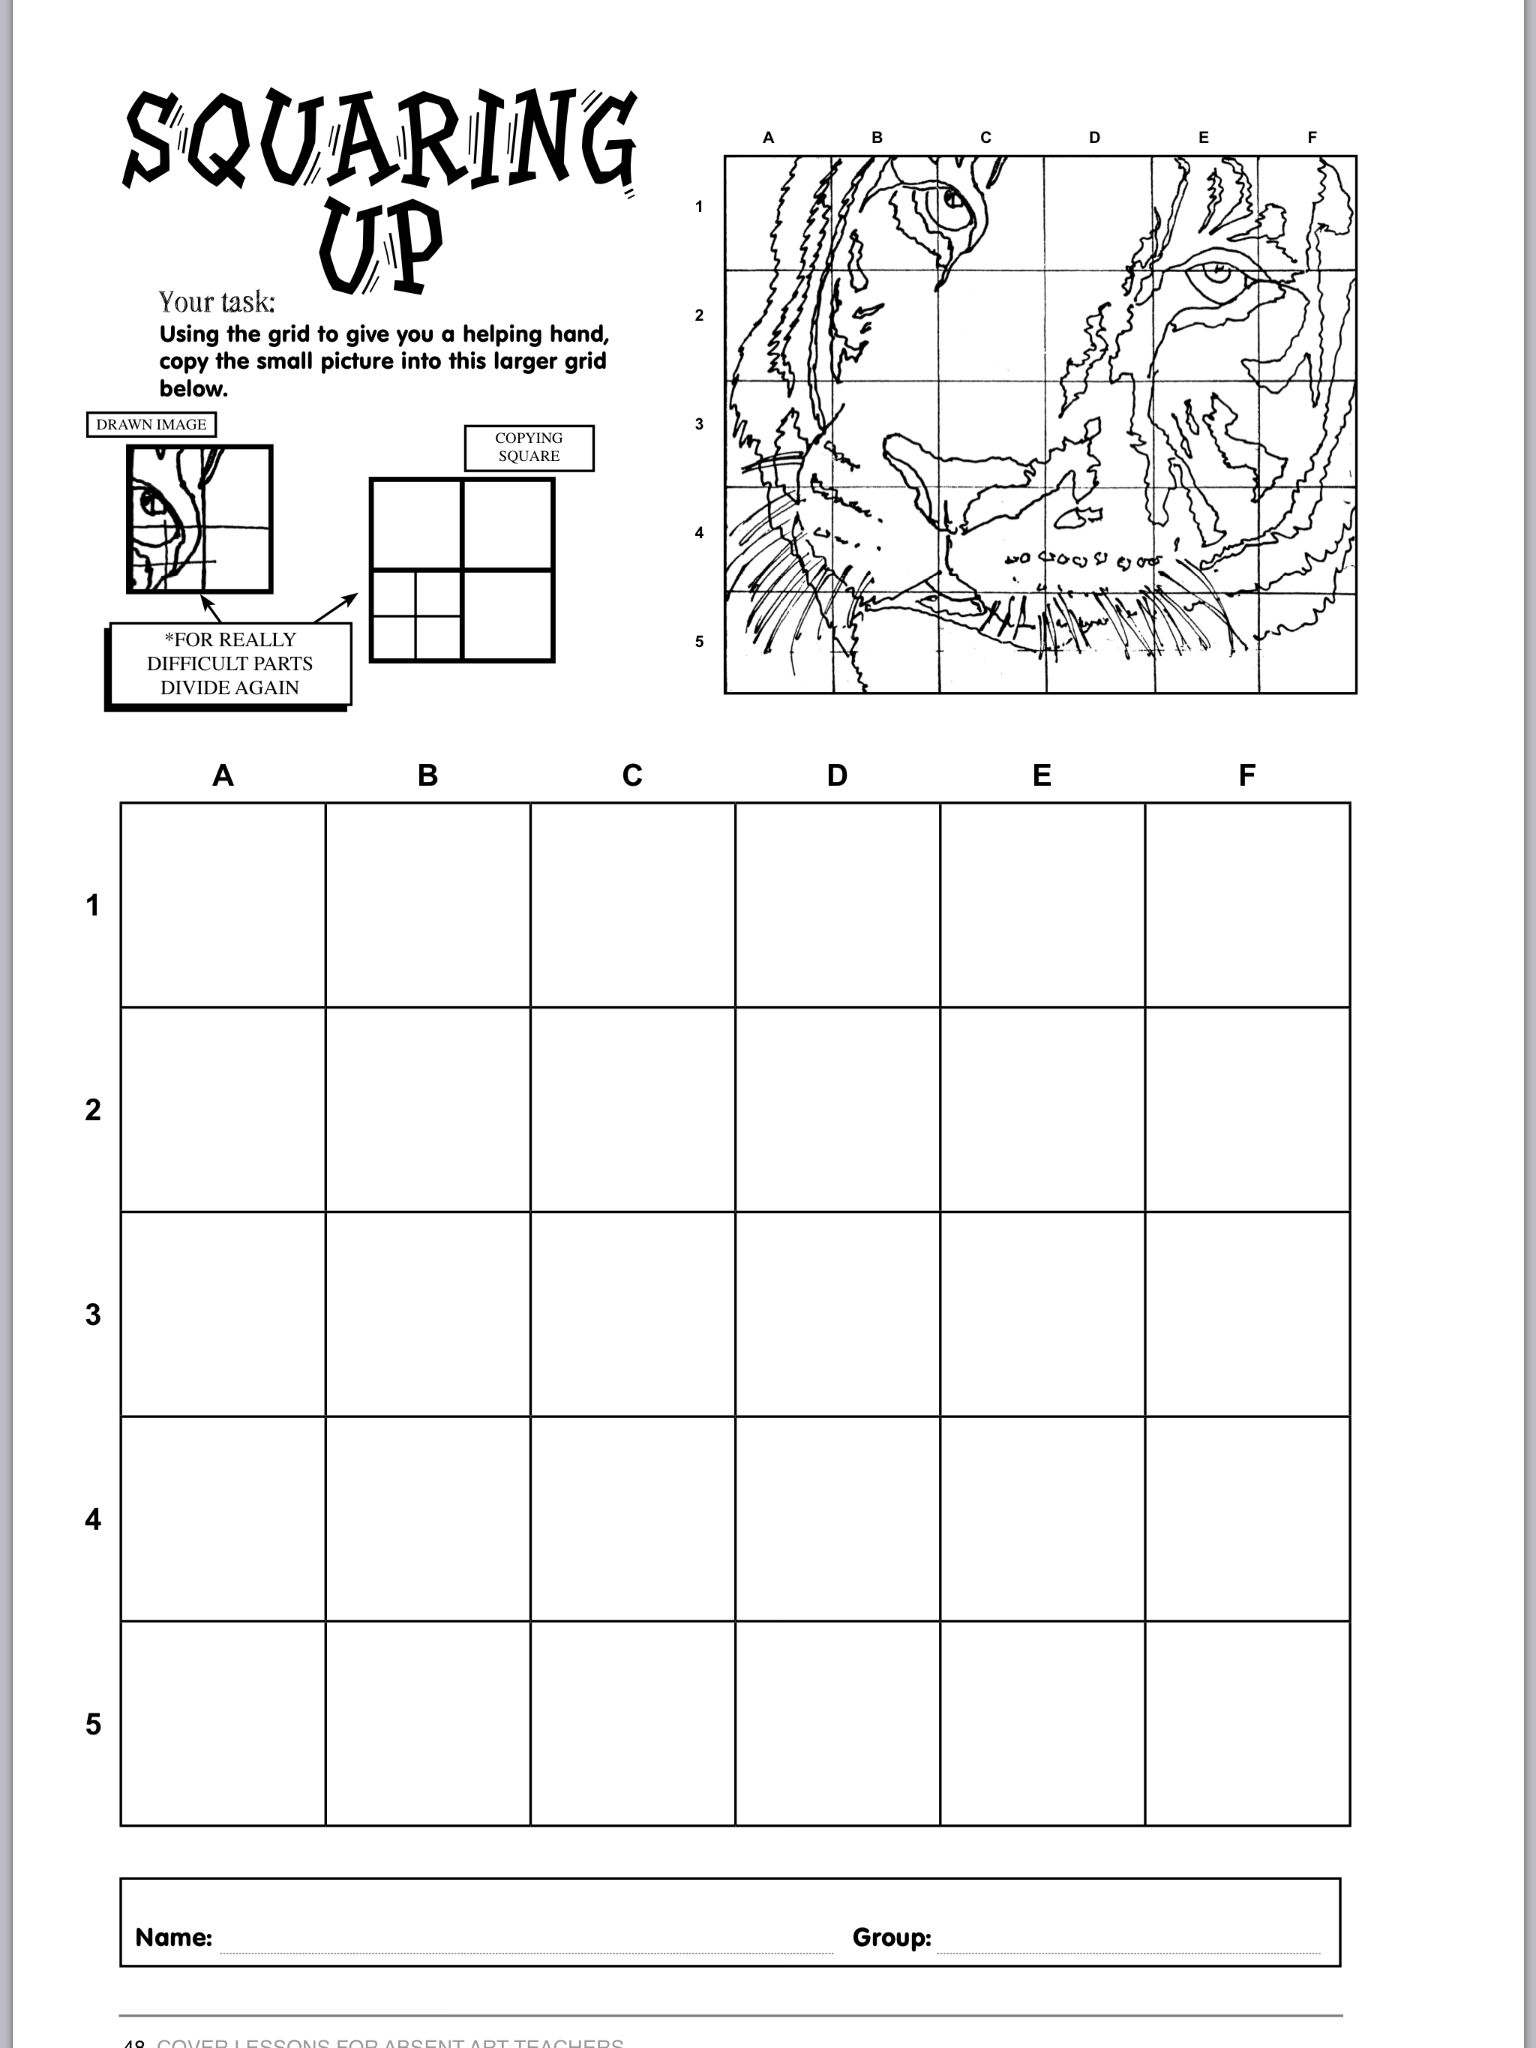 This Is An Excellent Tool To Practice Making Lines And